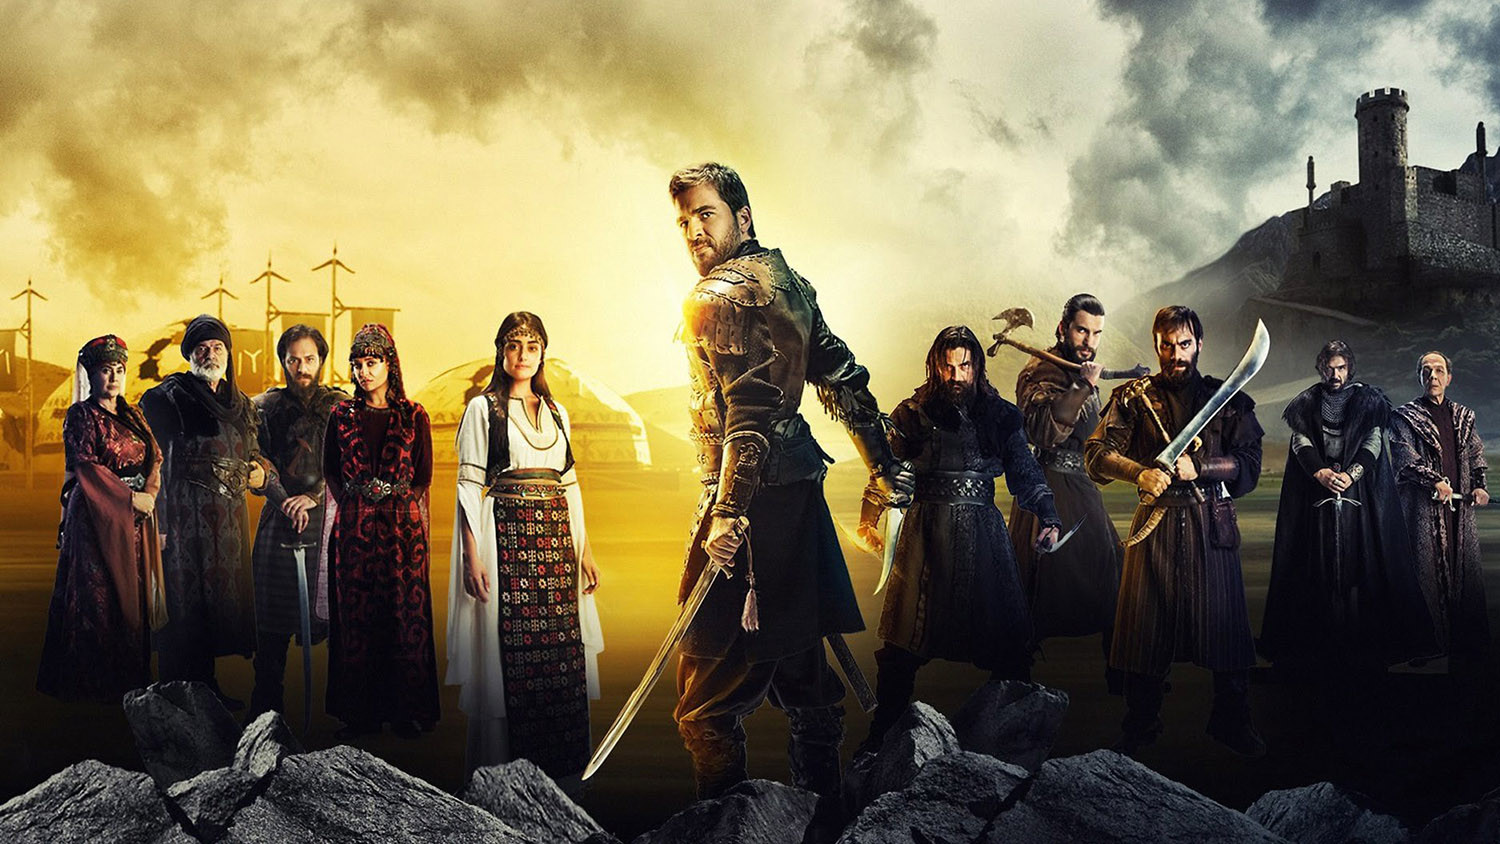 PTV reportedly made a whooping Rs.42 crores profit by airing Dirilis: Ertugrul